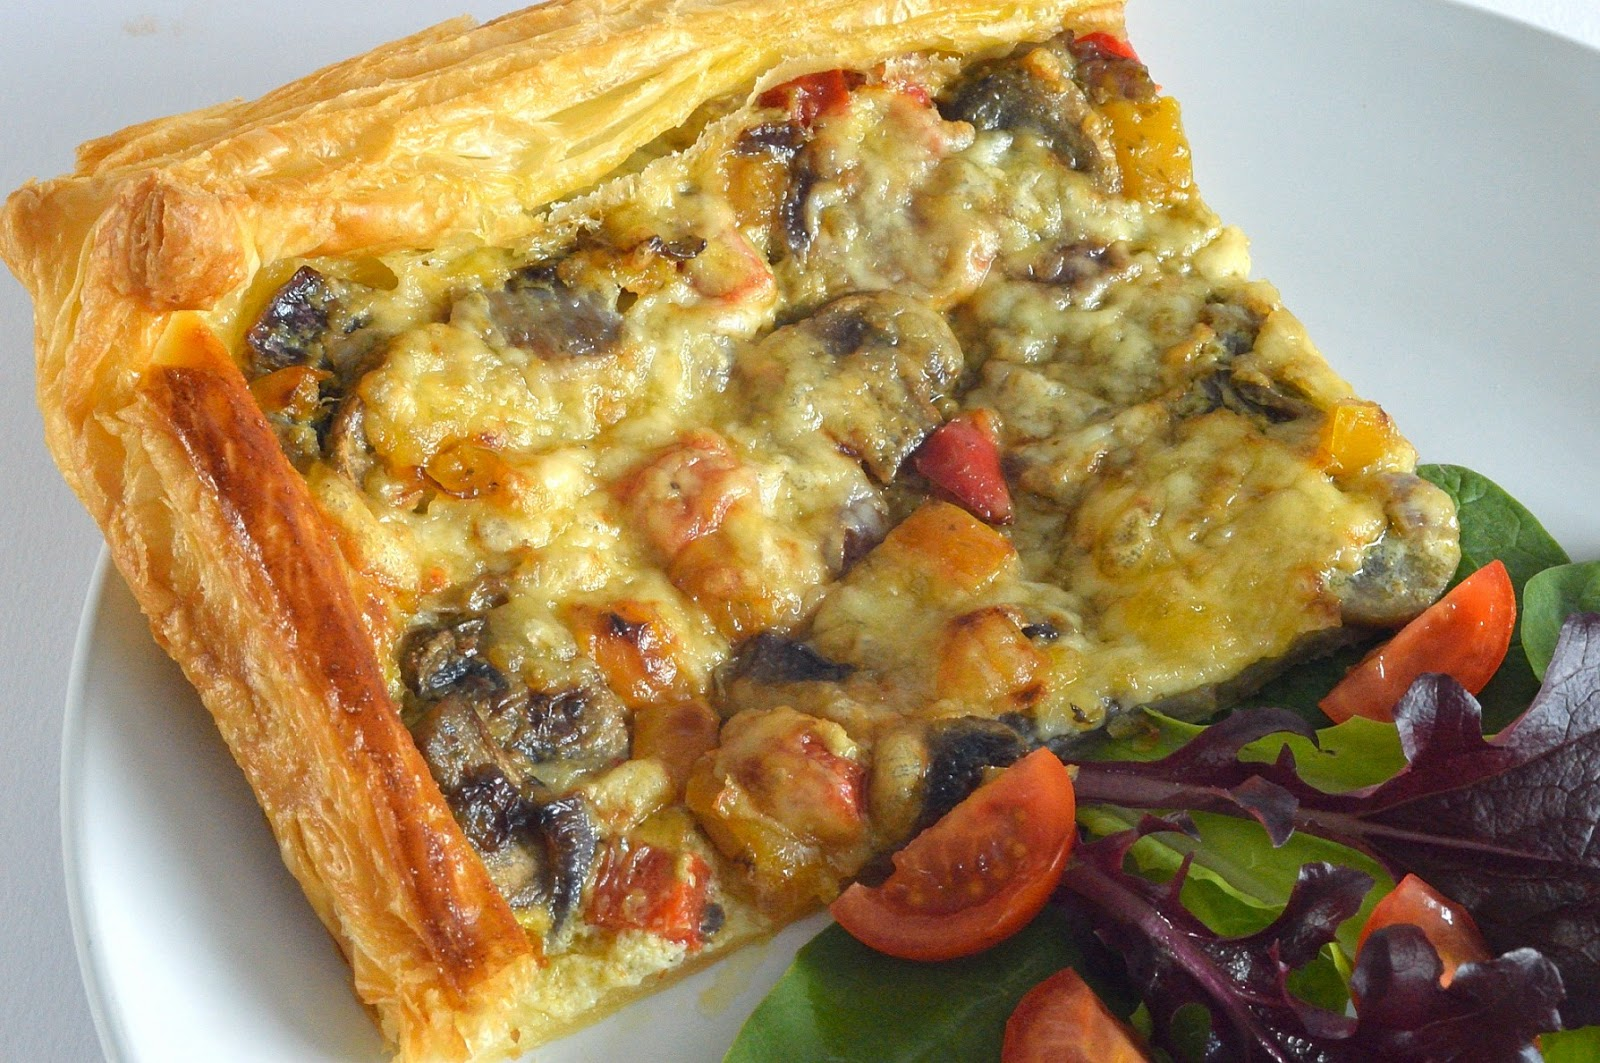 Utterly Scrummy Food For Families: Creamy Mushroom Tart